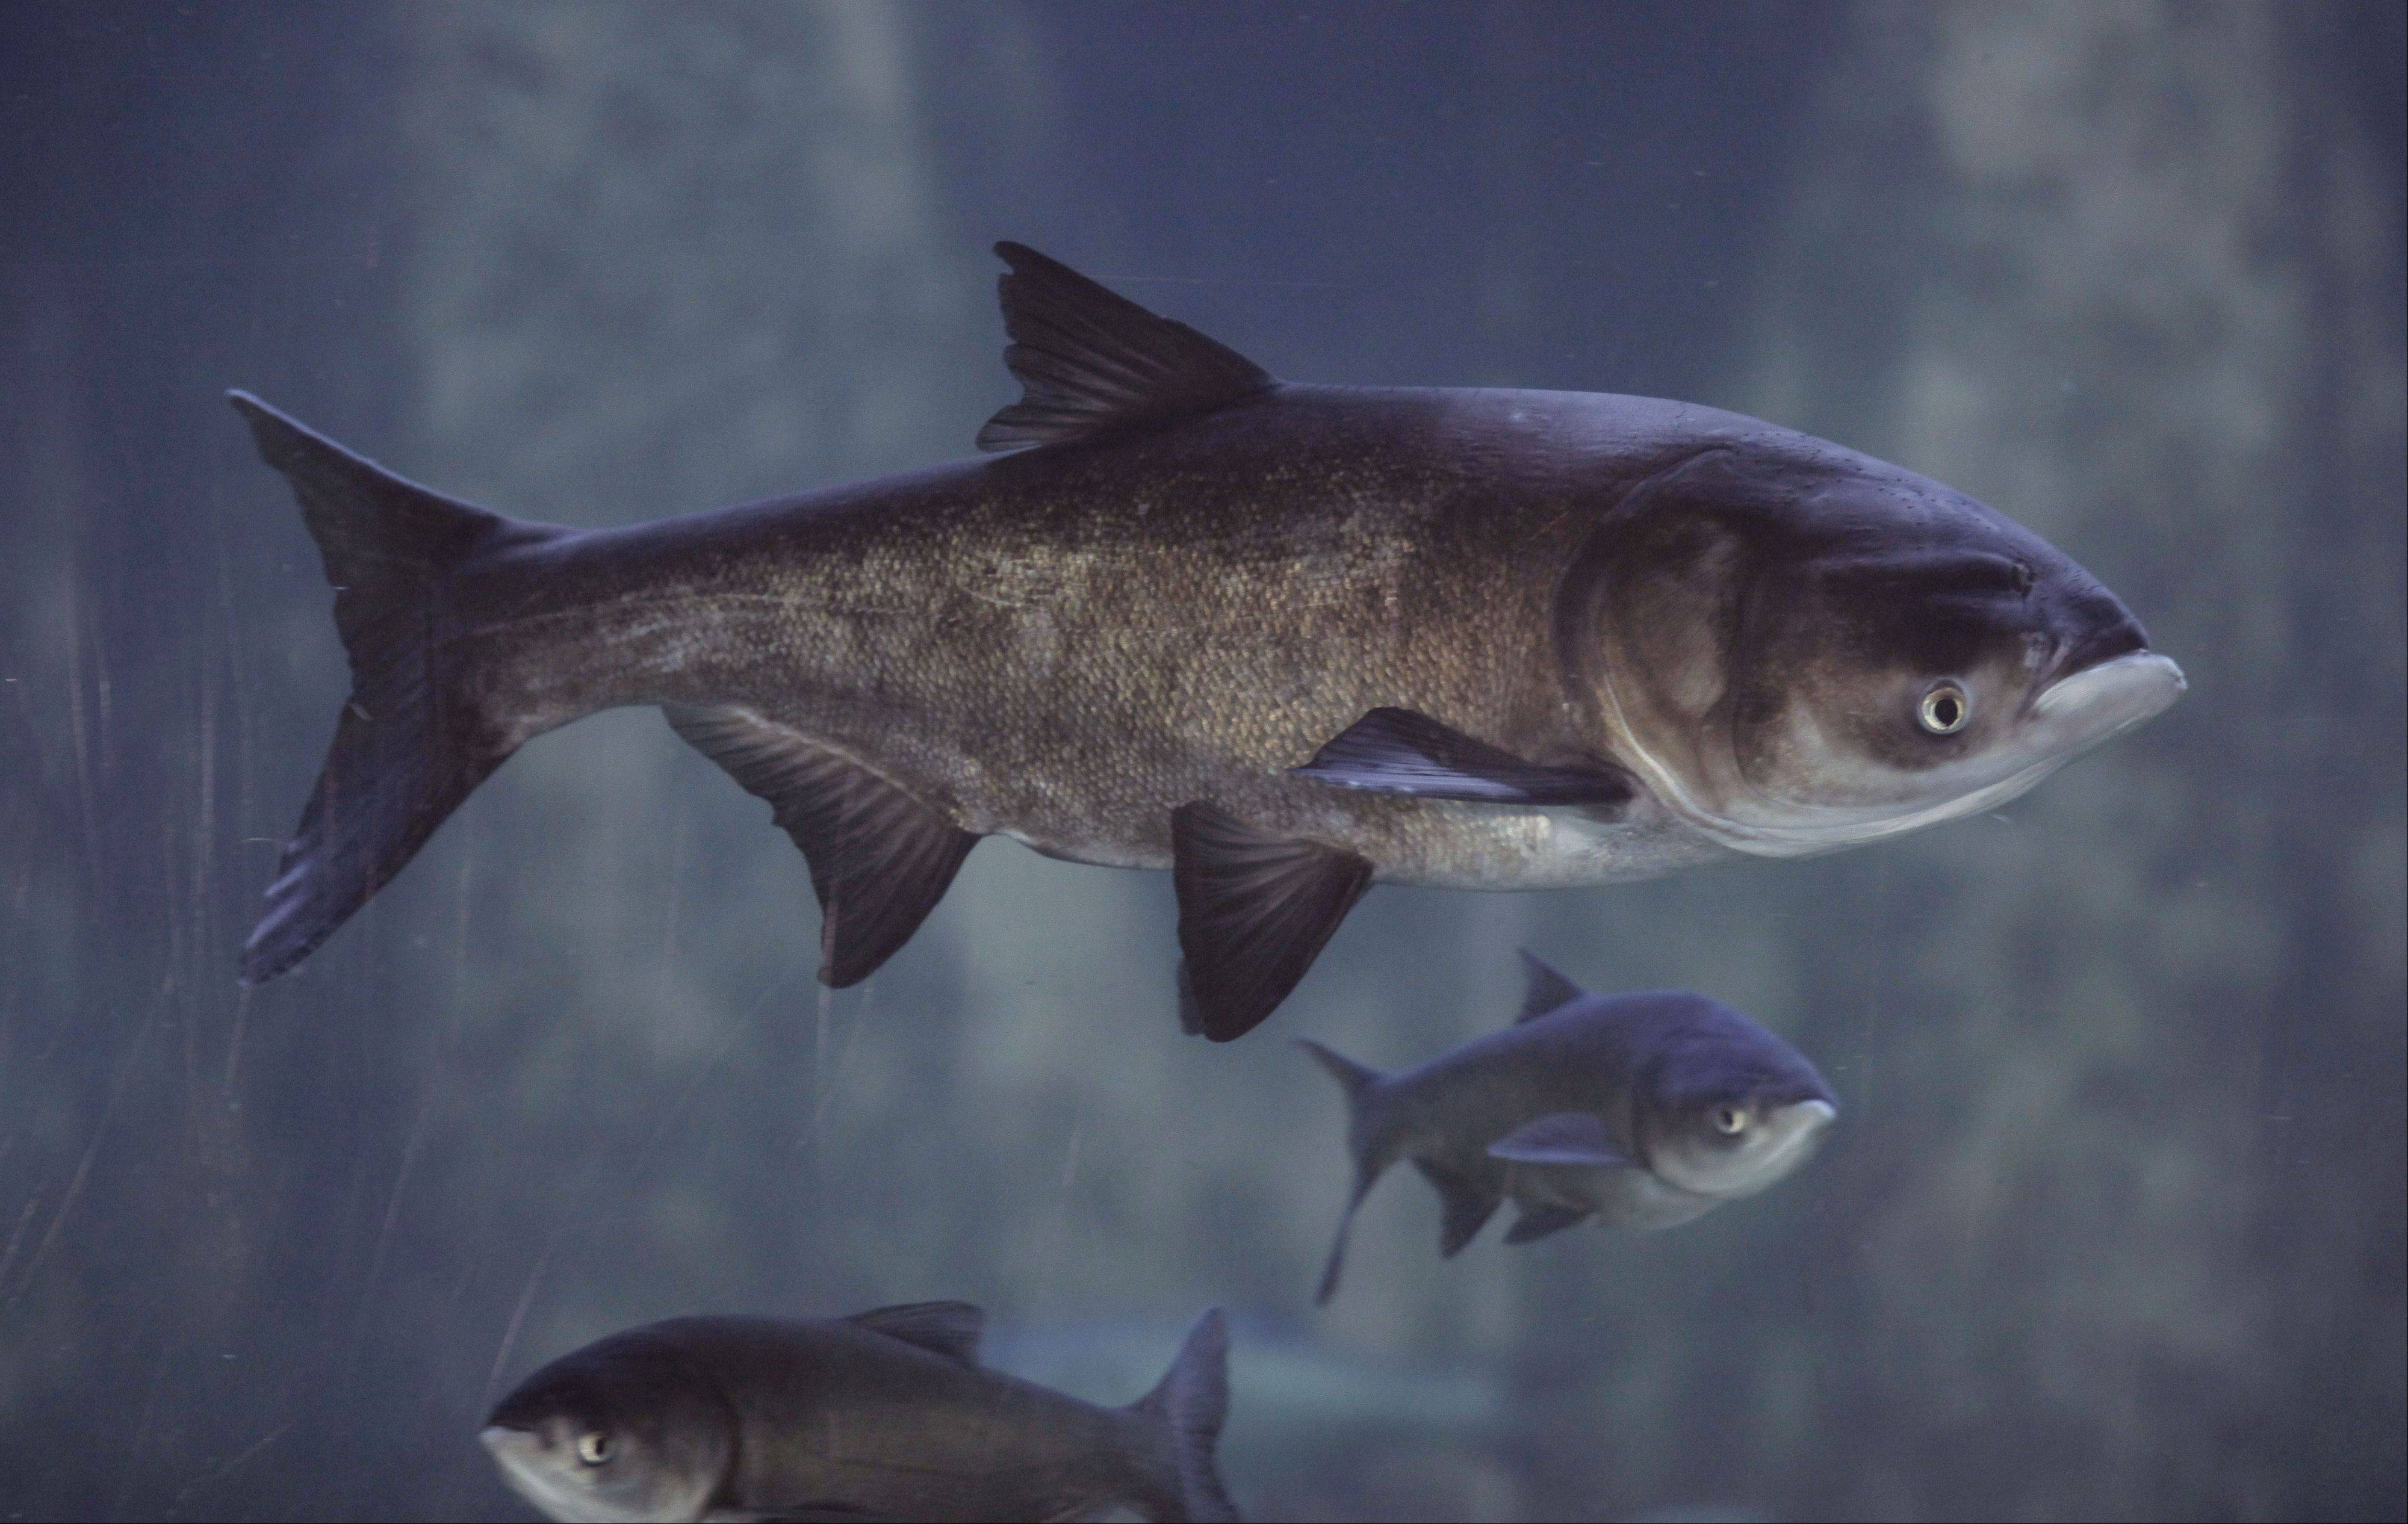 Scientists fear the voracious Asian carp eventually could crowd out native species in the Great Lakes, endangering the region�s $7 billion fishing industry.